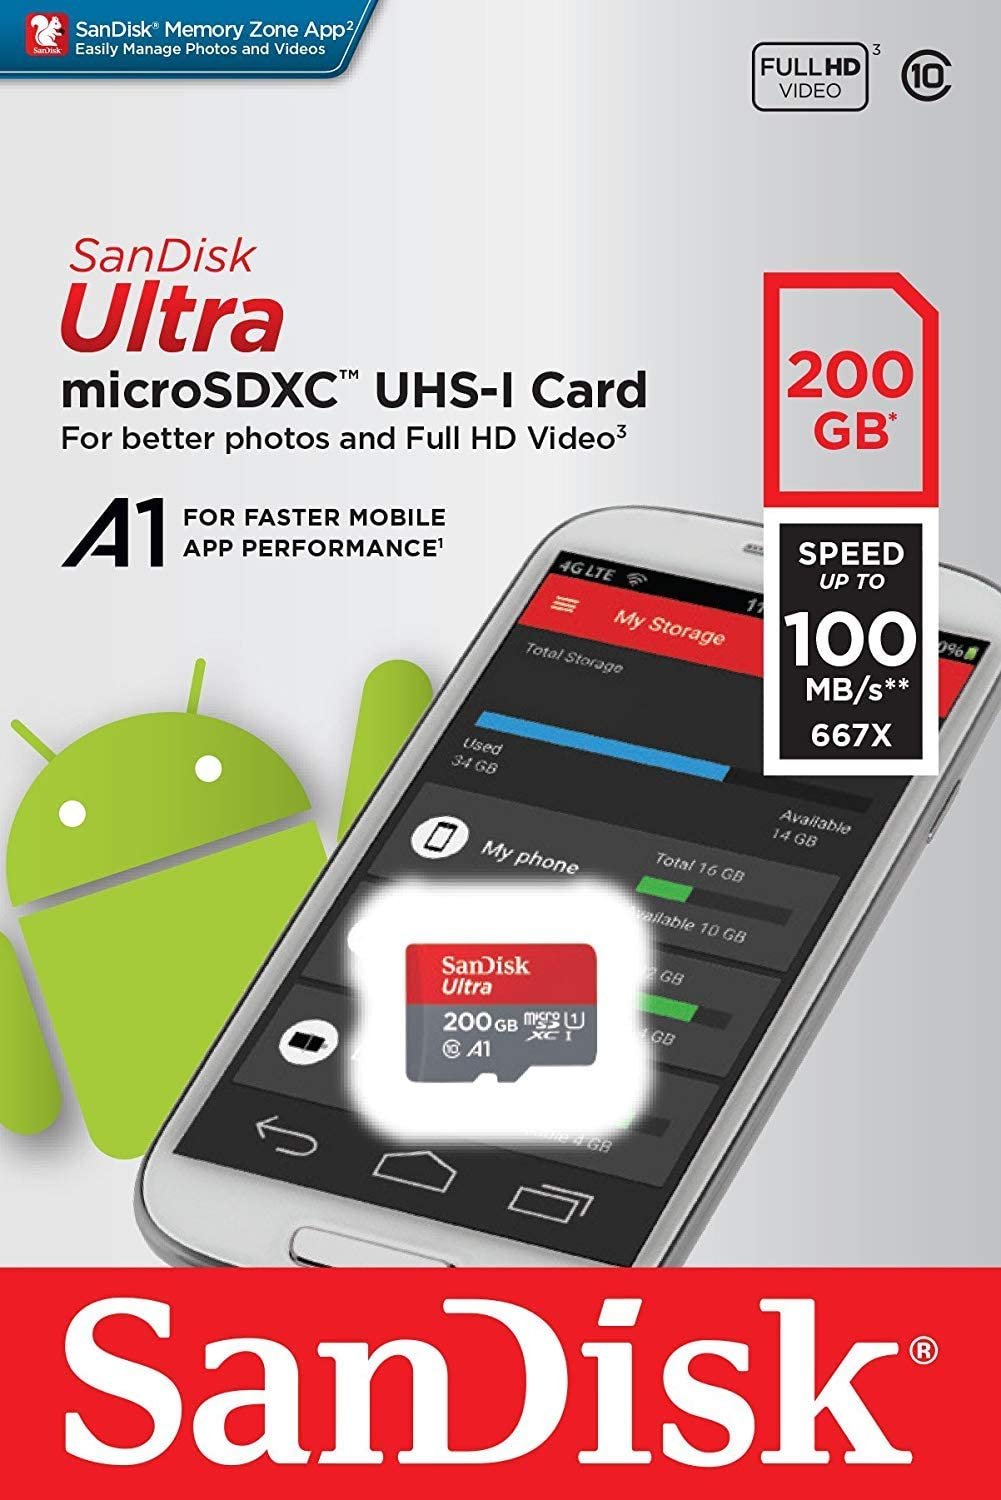 100MBs A1 U1 C10 Works with SanDisk SanDisk Ultra 200GB MicroSDXC Verified for LG G Pad II 10.1 by SanFlash